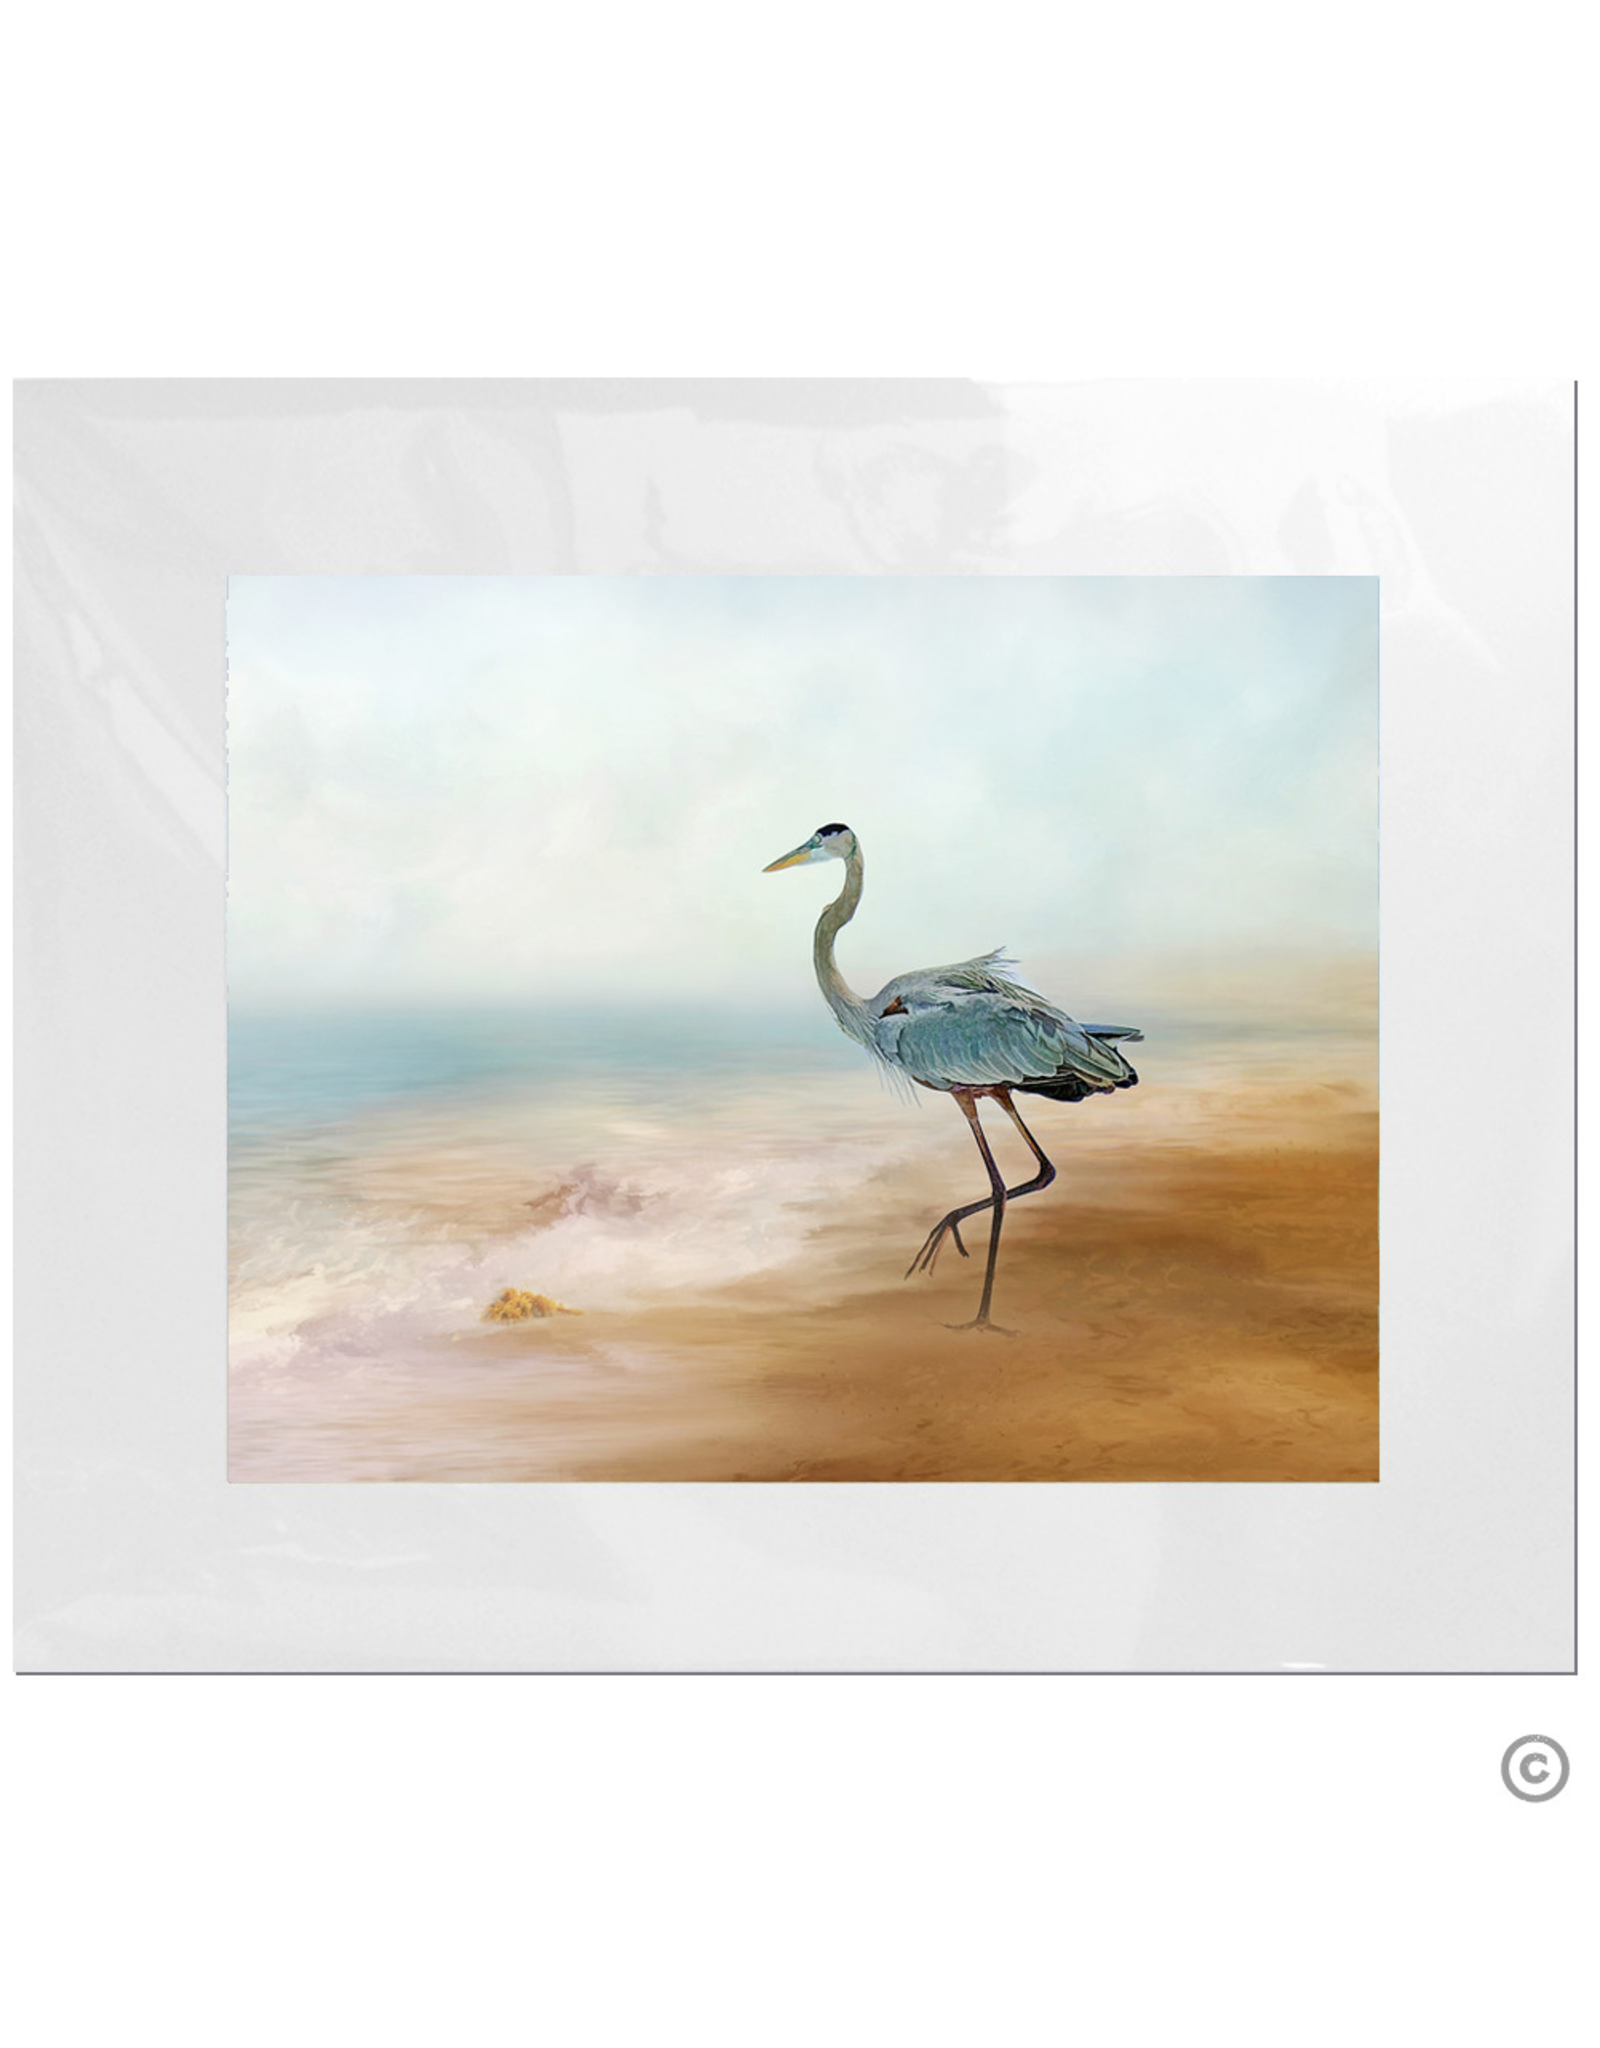 Maureen Terrien Photography Art Print Heron on Beach 11x14 - 8x10 Matted